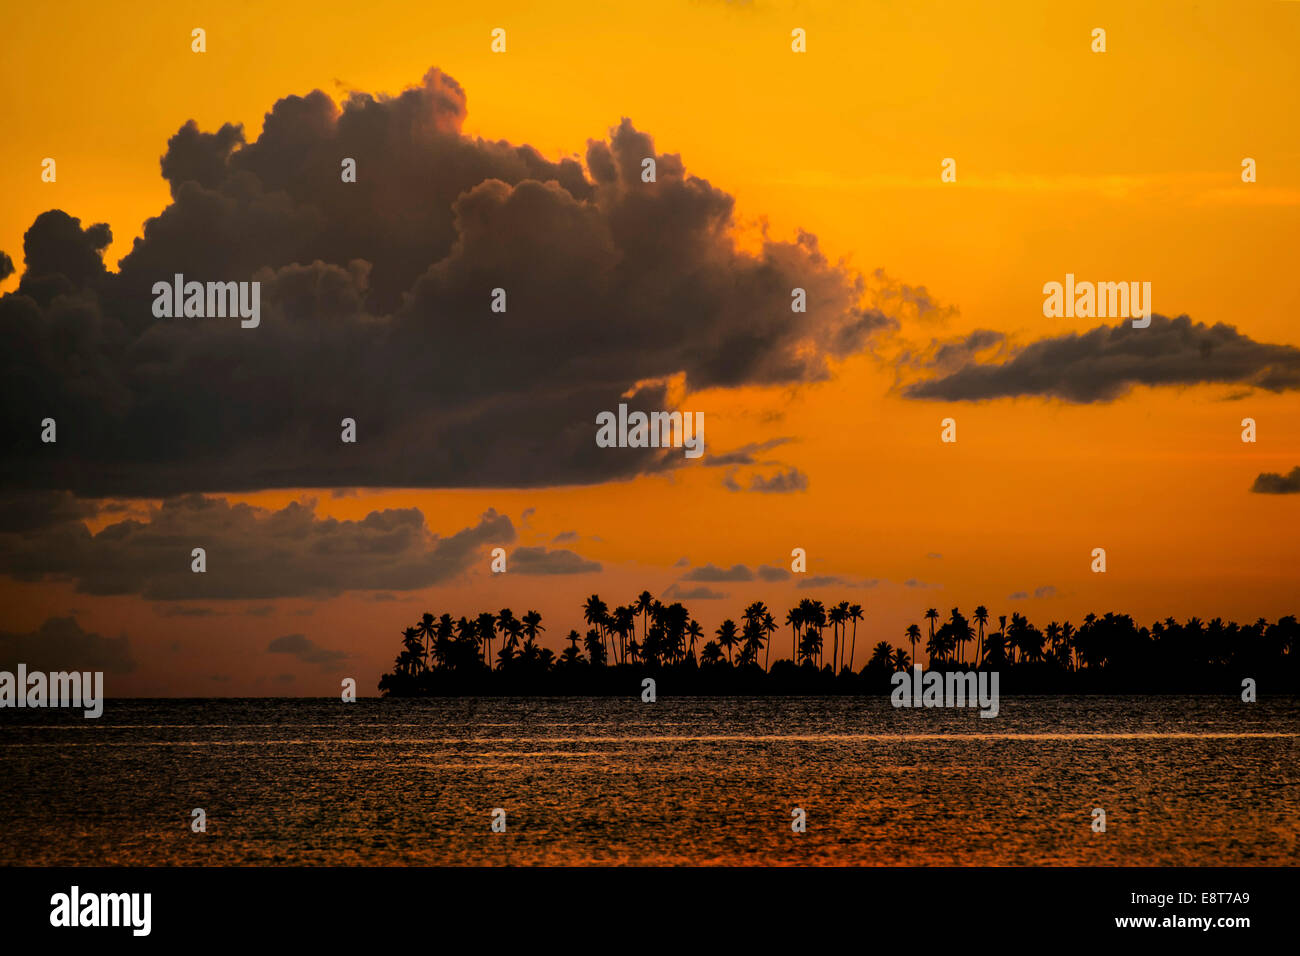 Sunset and an island with palm trees, Sulawesi, Indonesia - Stock Image